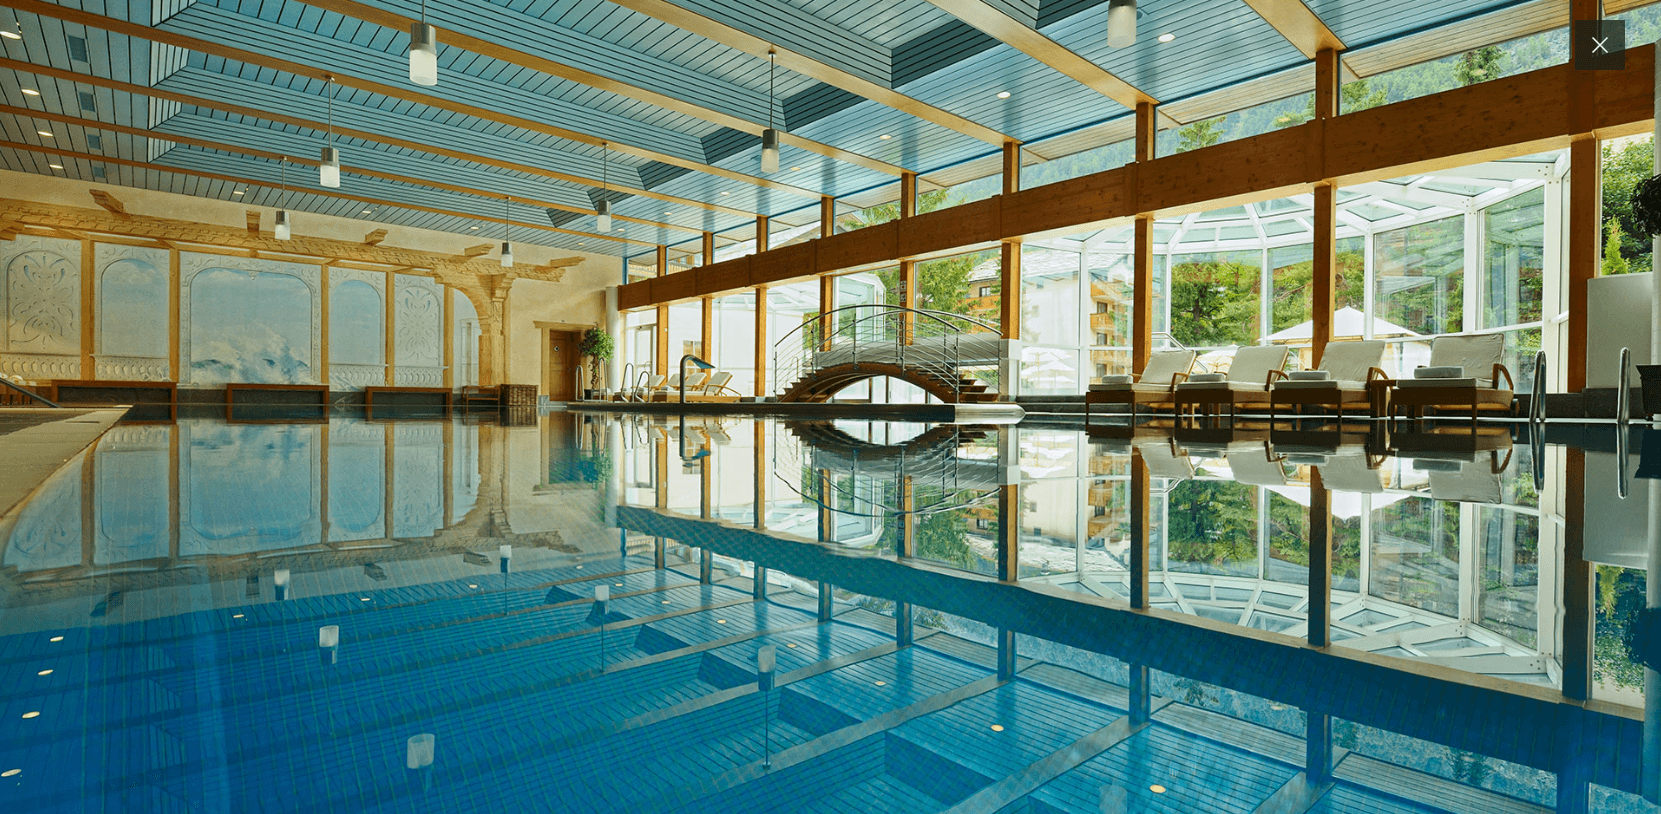 11 Most Amazing Indoor Hotel Pools For Kids Families